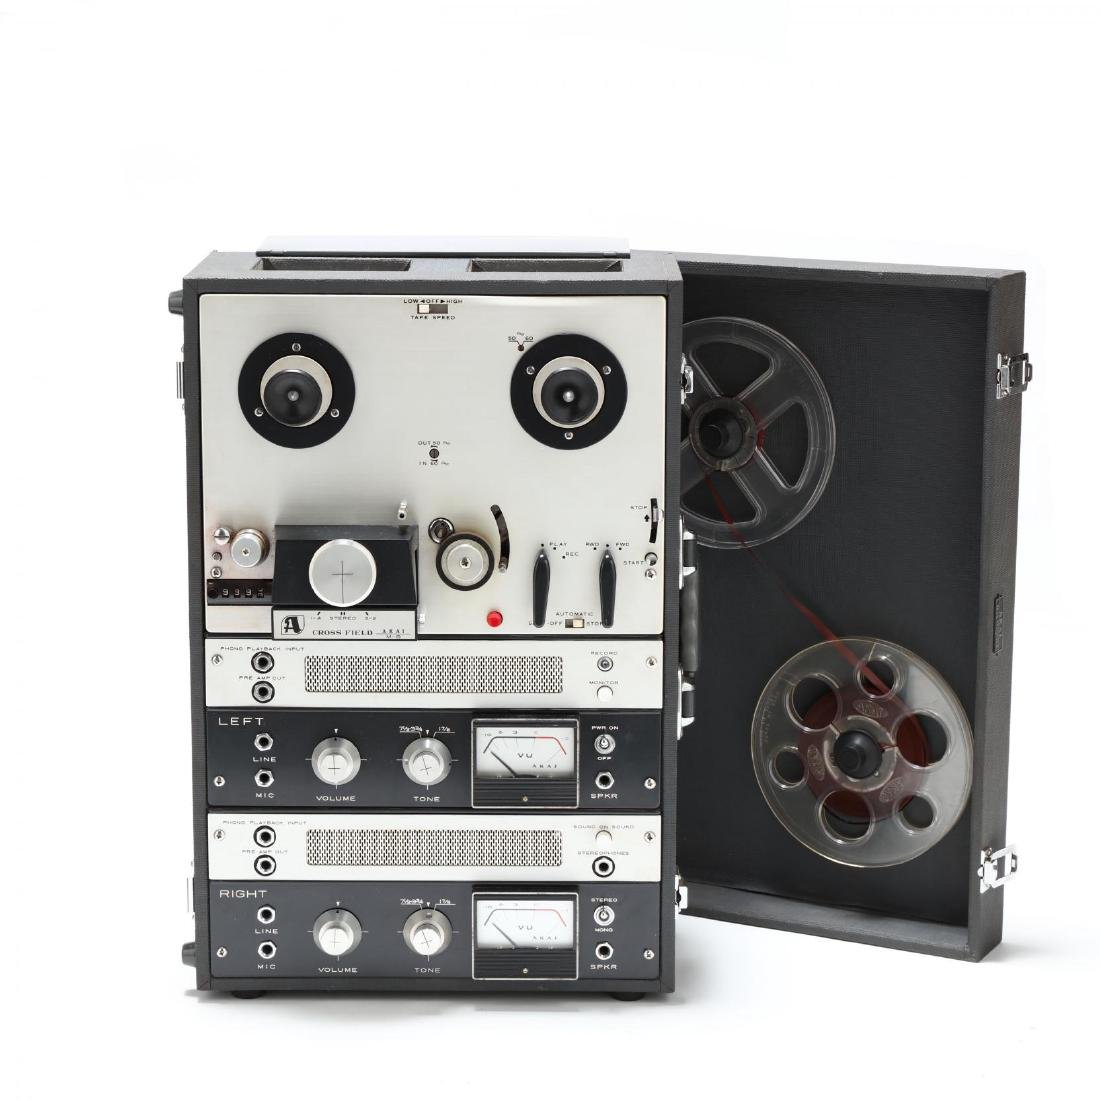 Akai Tape Recorder, and Bang & Olufson Speakers - 2